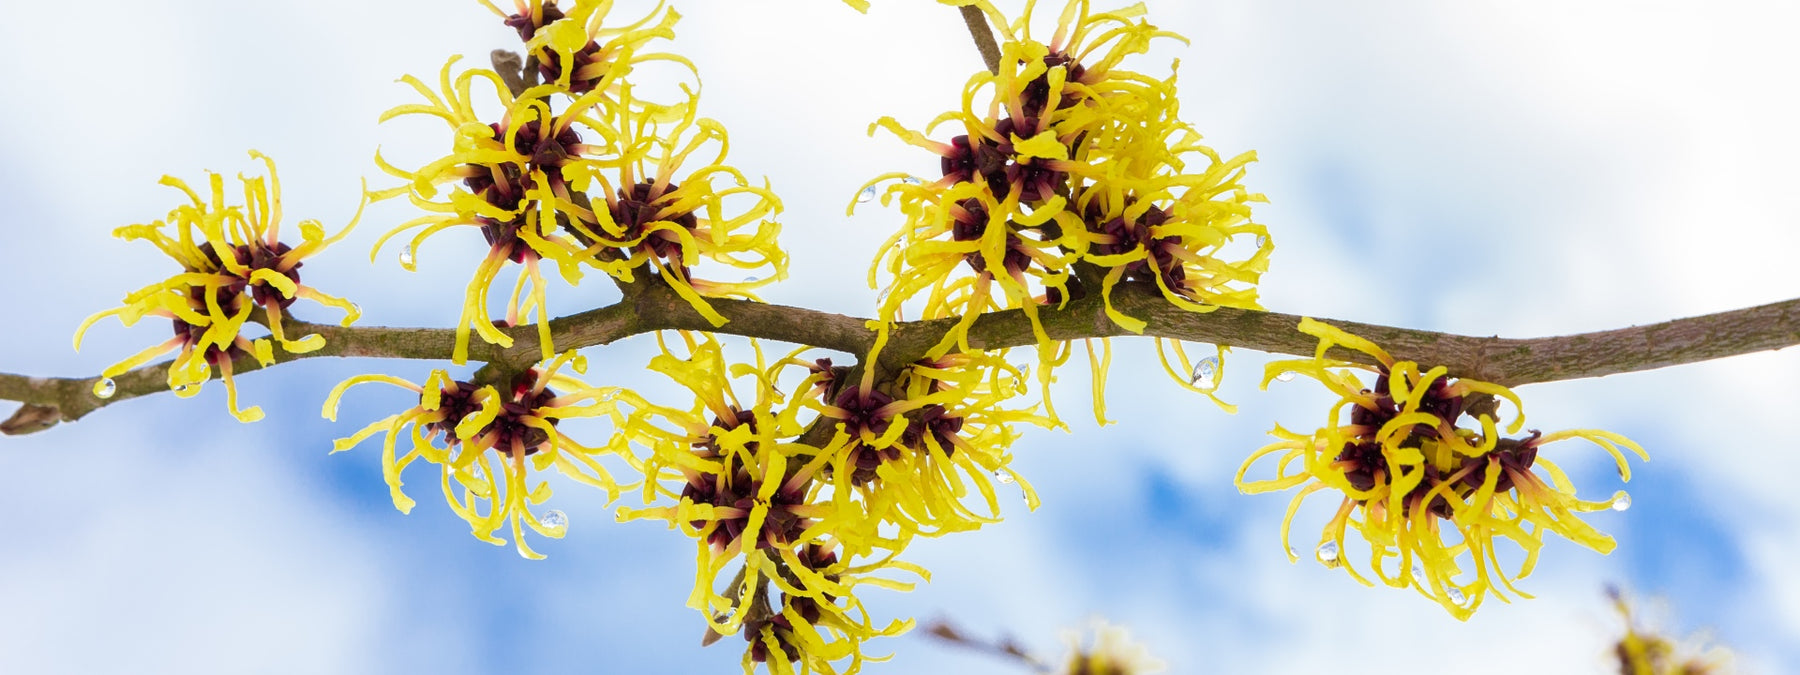 14 Witch Hazel Uses and Benefits